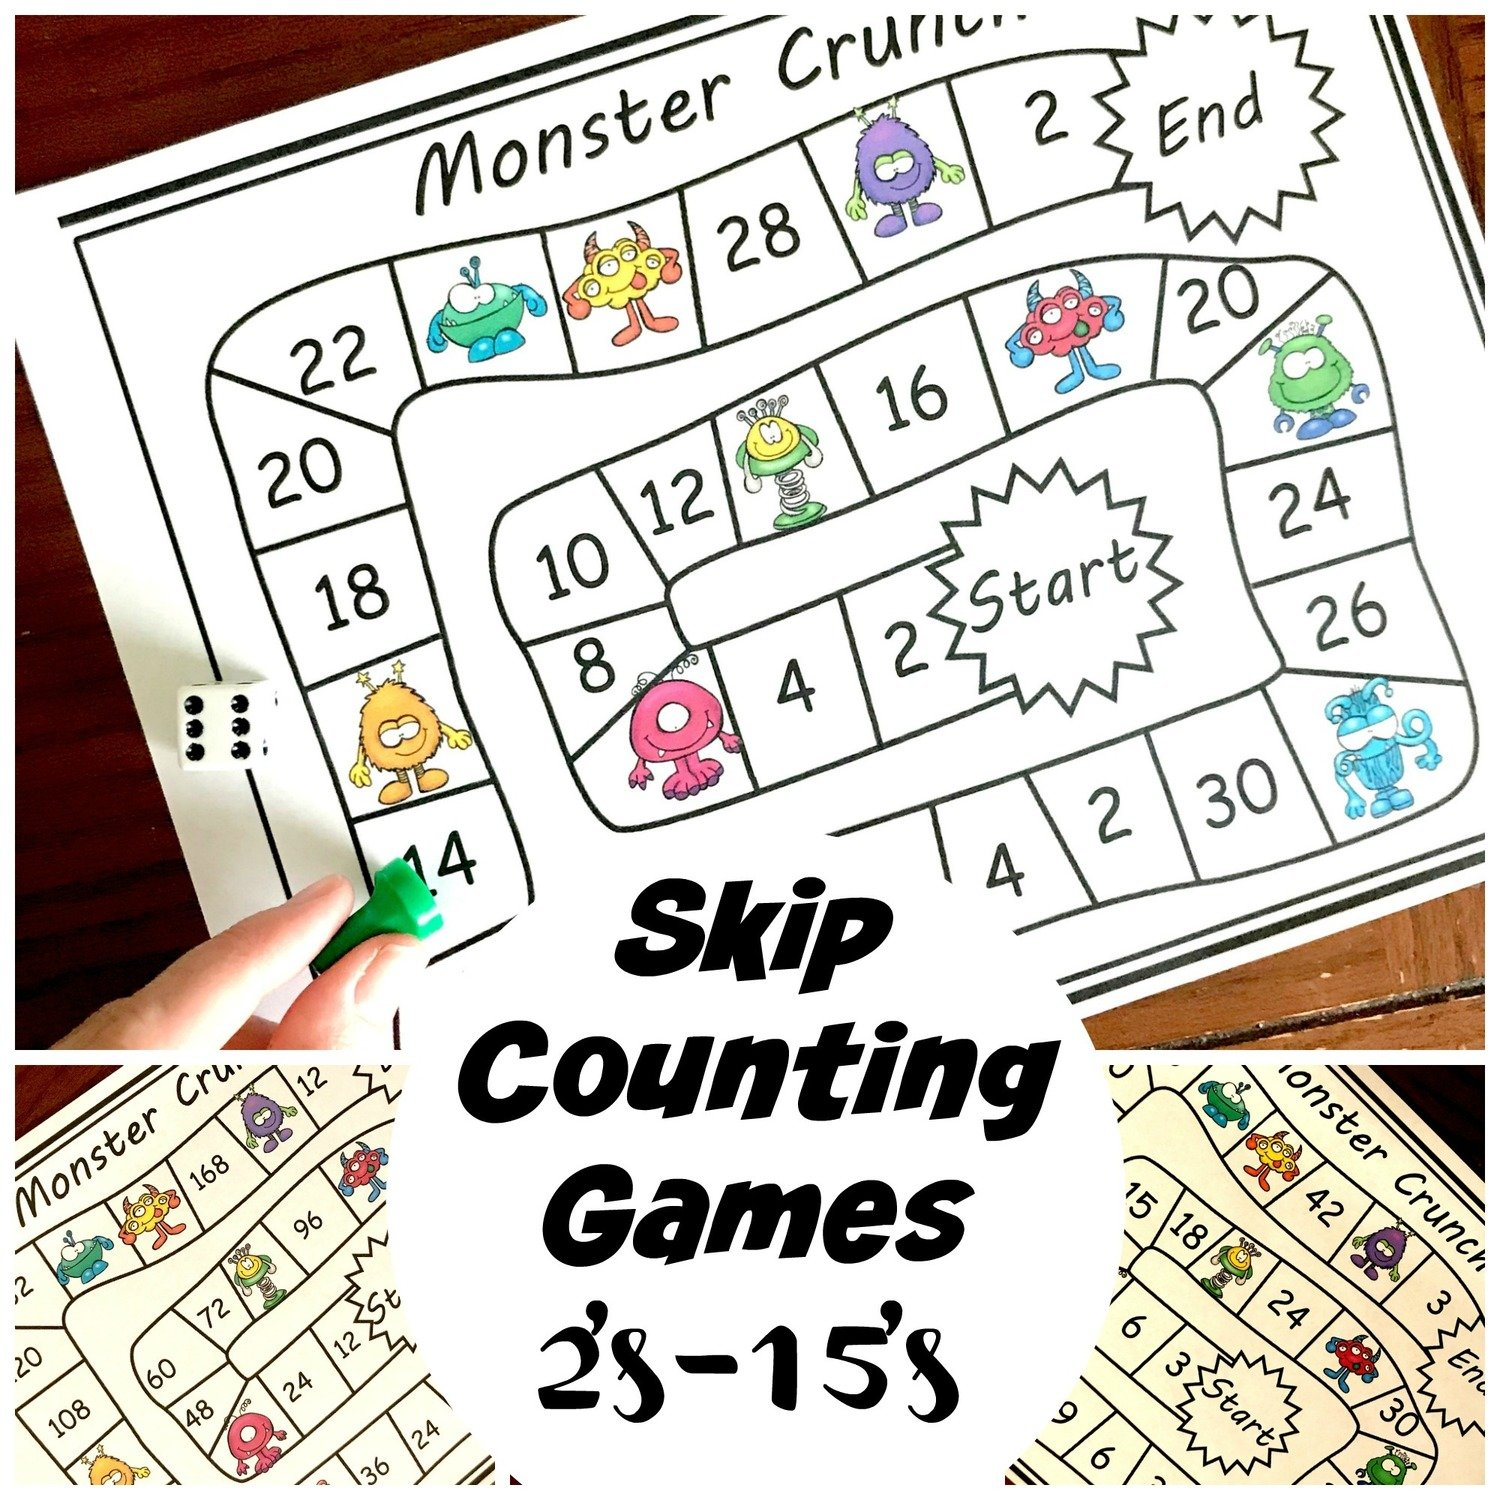 Skip Counting Games 2's Through 15's